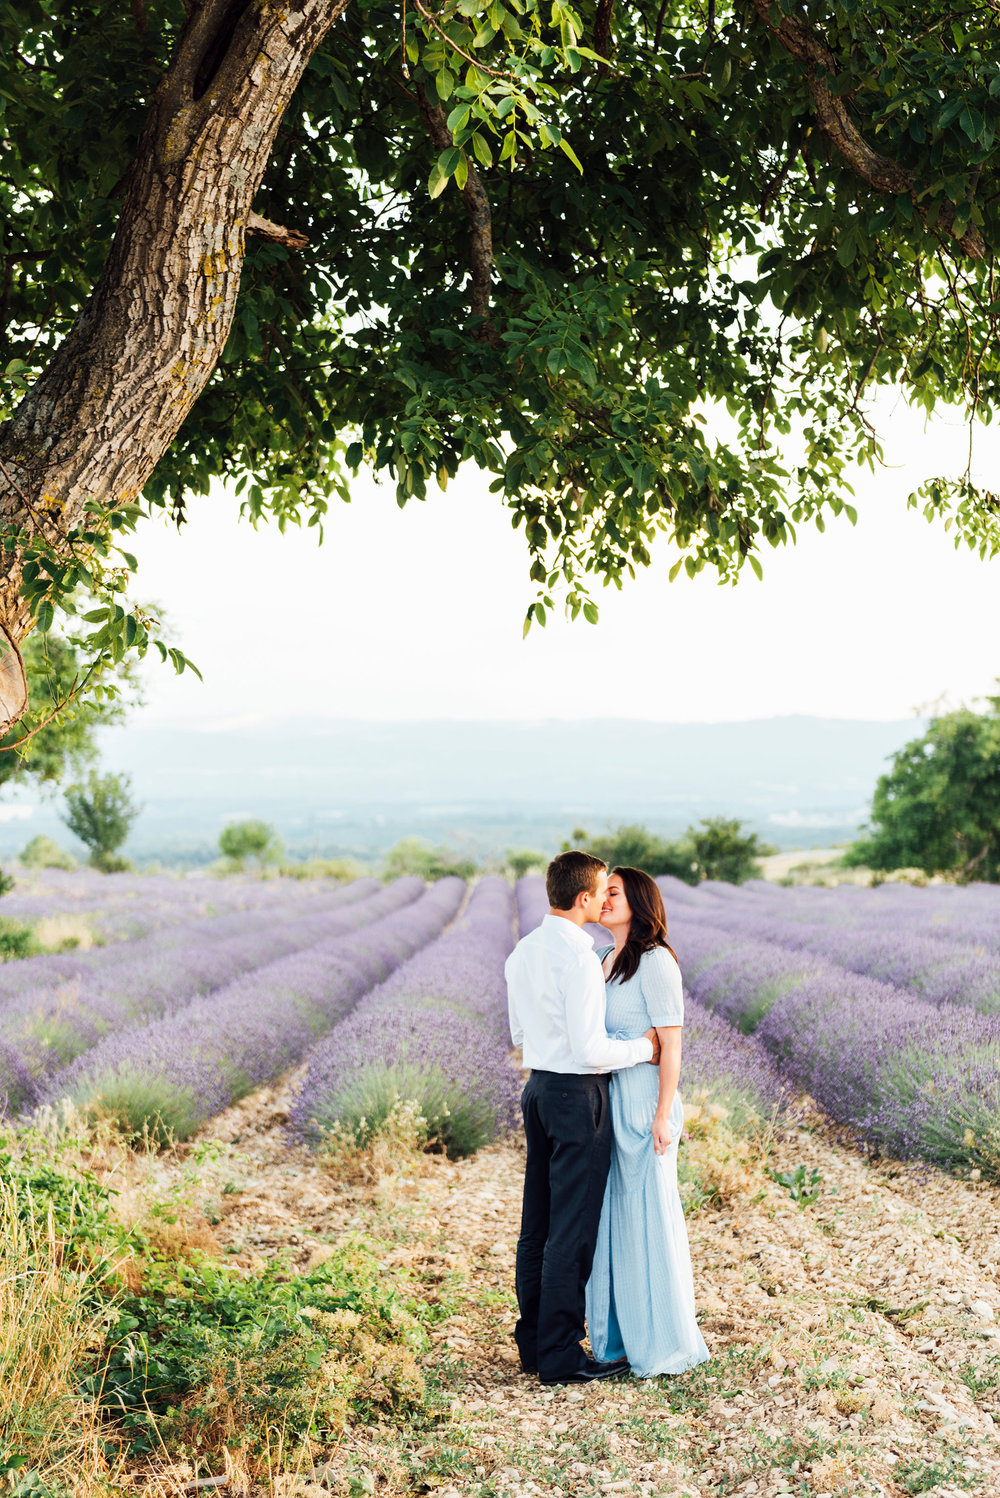 001-katie-mitchell-provence-wedding-portrait-engagement-photographer-south-of-france.jpg